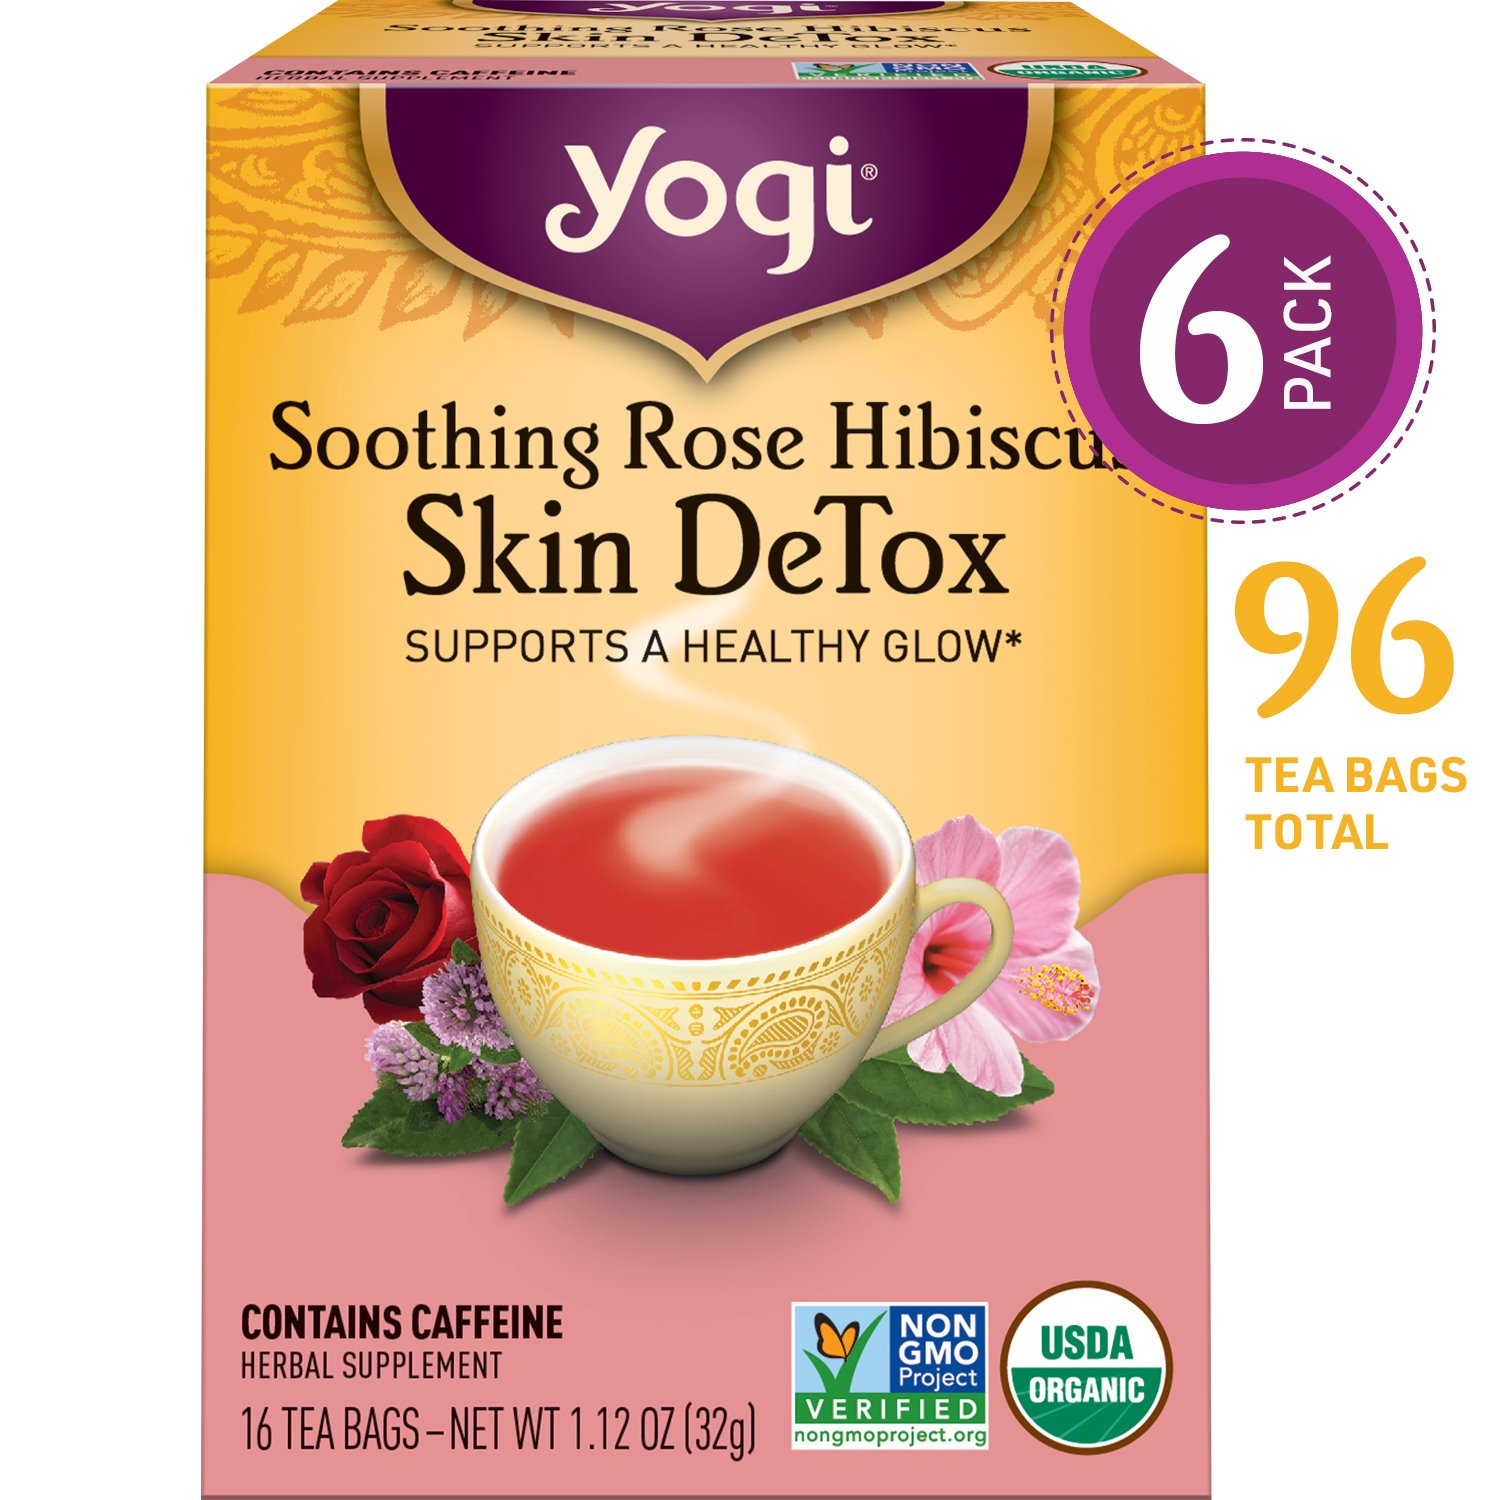 Yogi Tea - Soothing Rose Hibiscus Skin DeTox - Supports a Healthy Glow - 6 Pack, 96 Tea Bags Total by Yogi